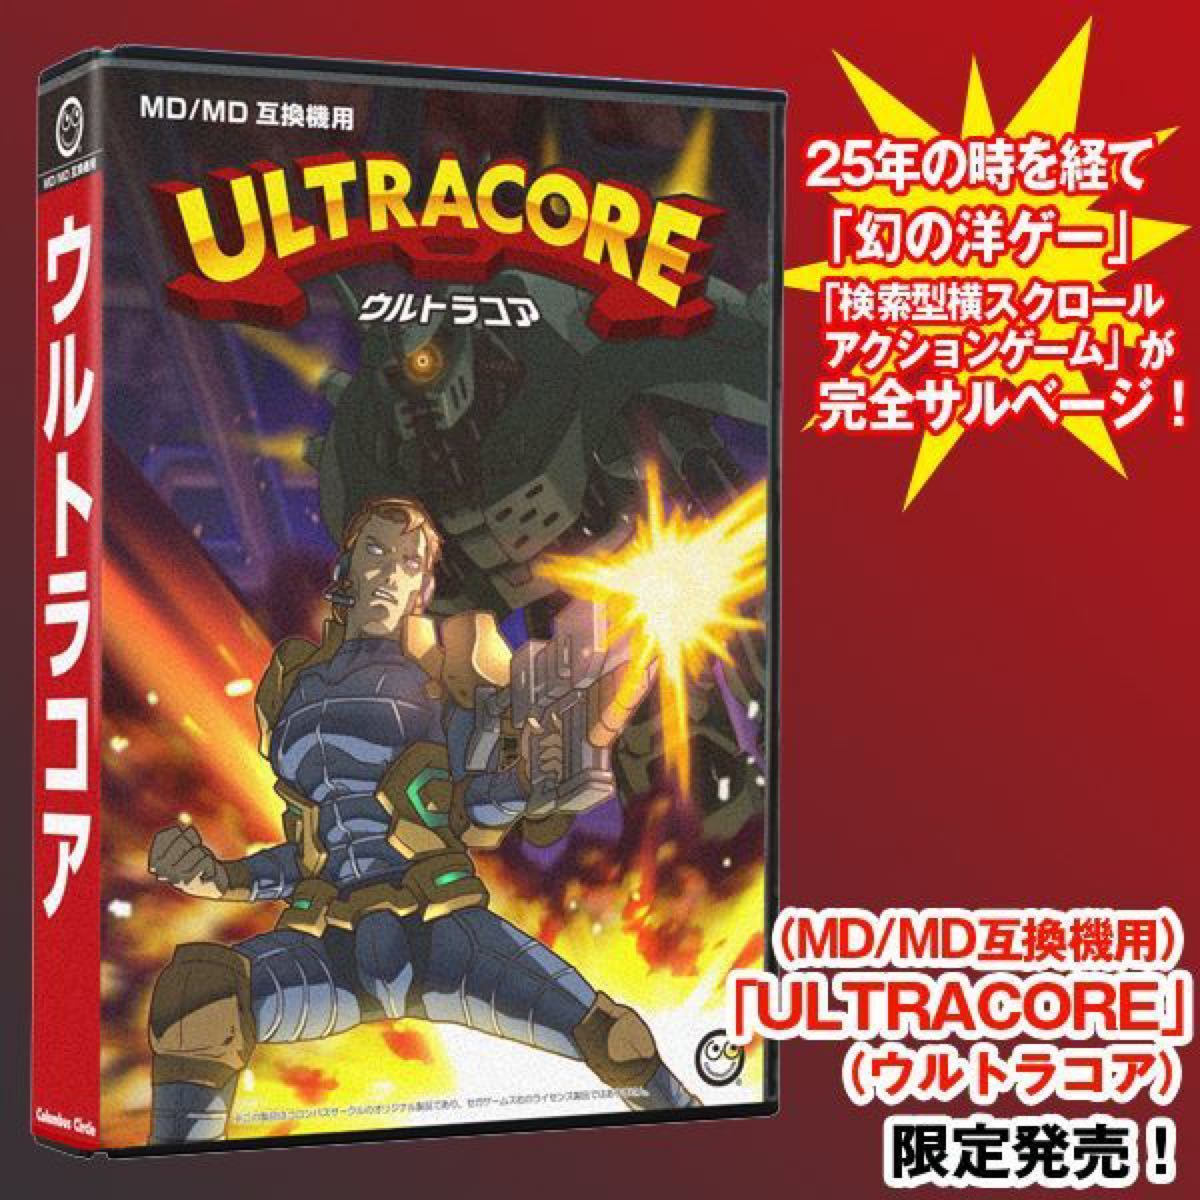 ULTRACORE-ウルトラコア-(MD/MD互換機用)新品未開封 即日発送